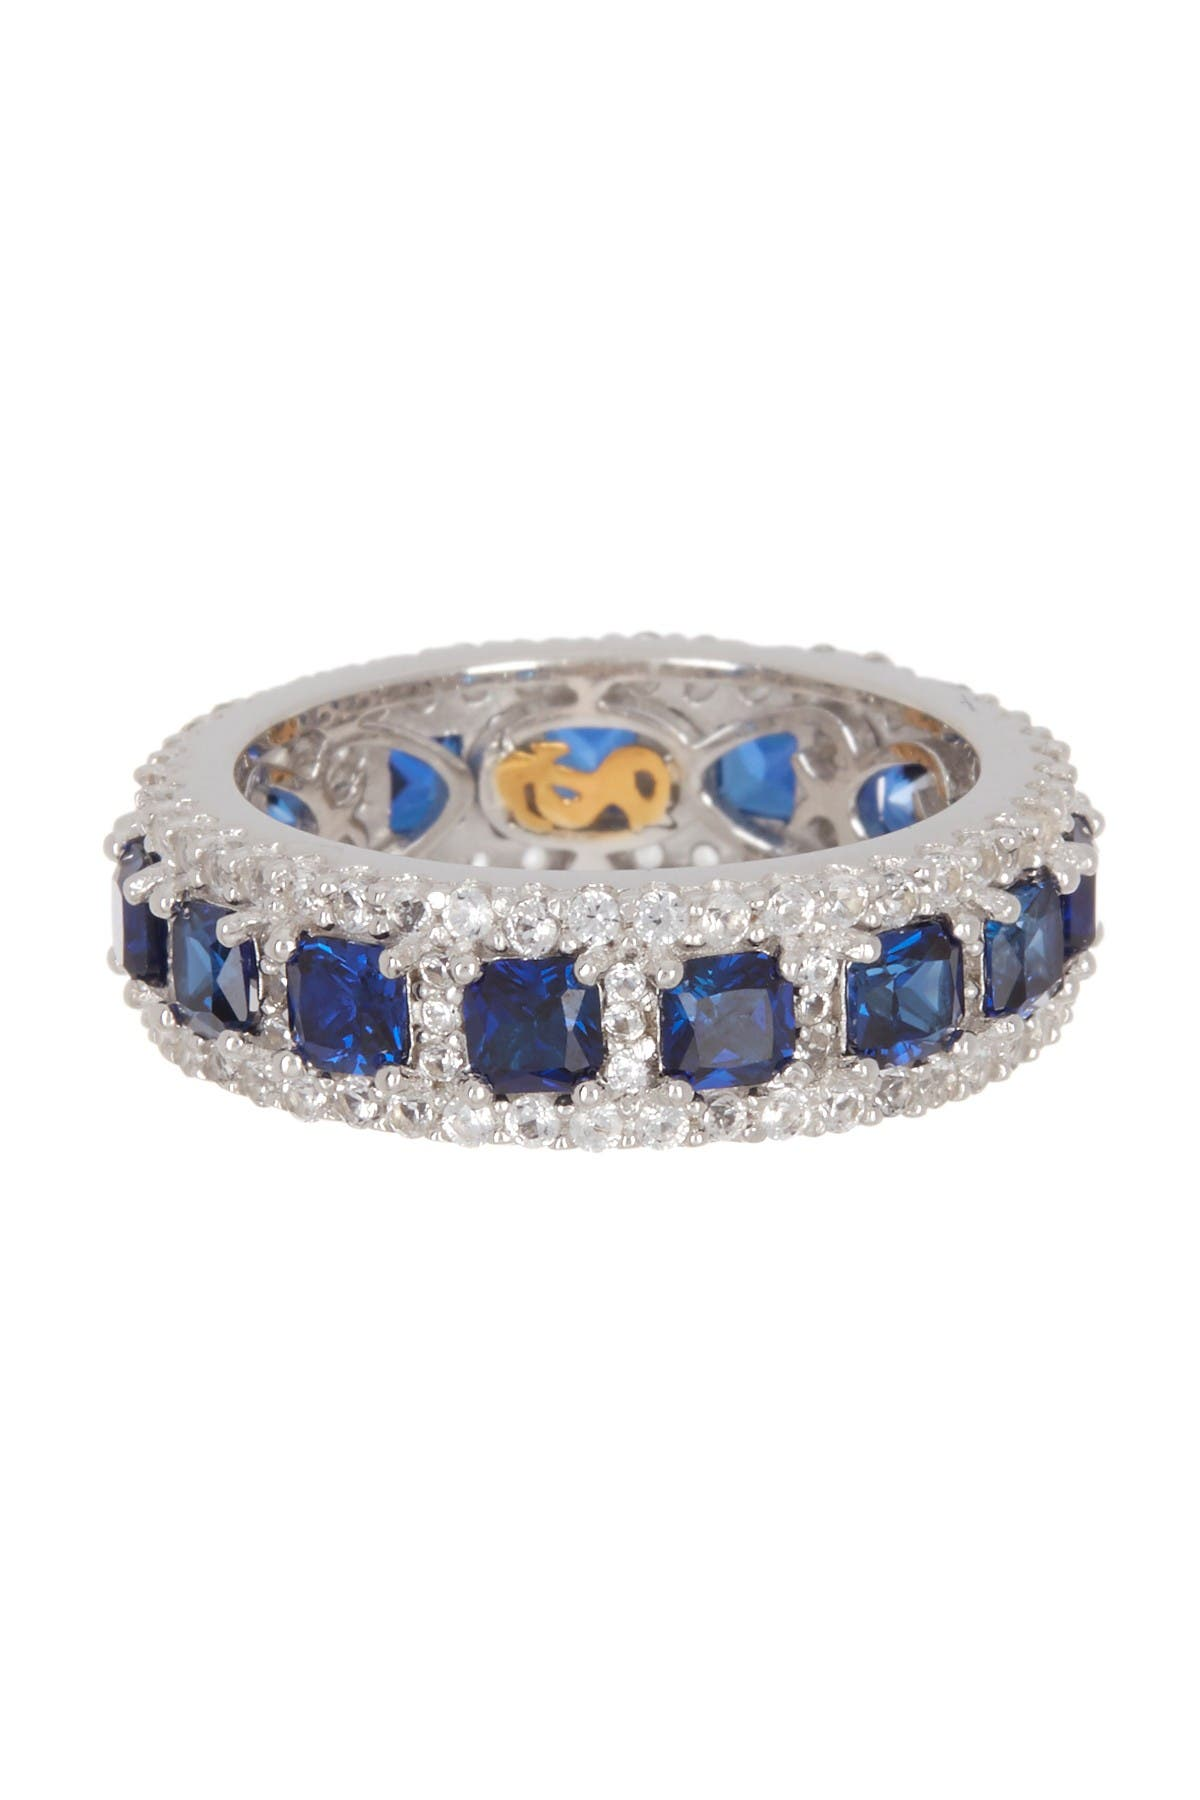 Image of Suzy Levian Sterling Silver Square Sapphire Diamond Accent Band - 0.02 ctw